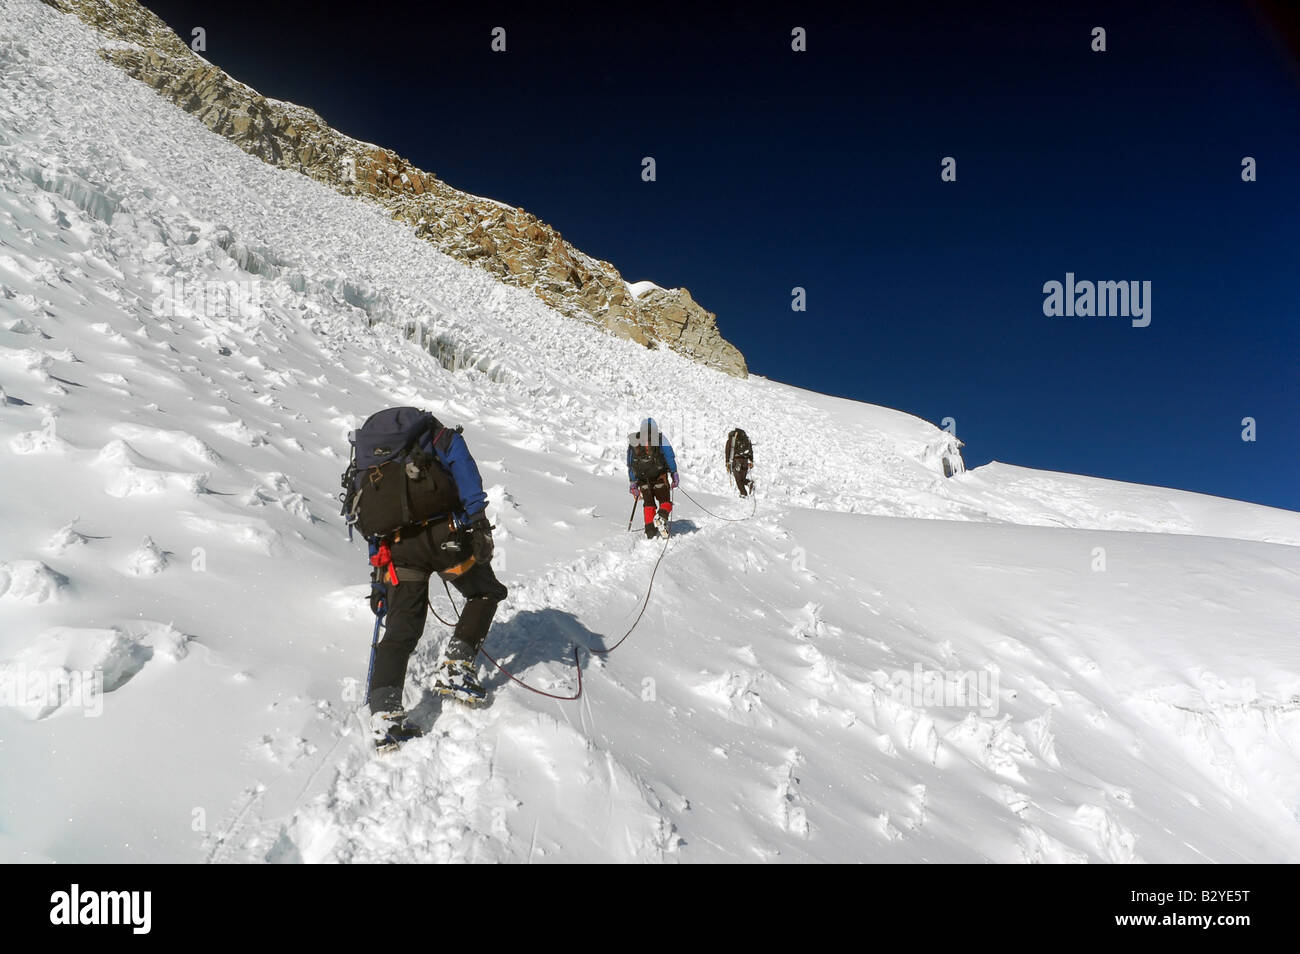 Mountaineers climbing Huayna Potosi, a 6000m peak and part of Bolivia's Cordillera Real. - Stock Image